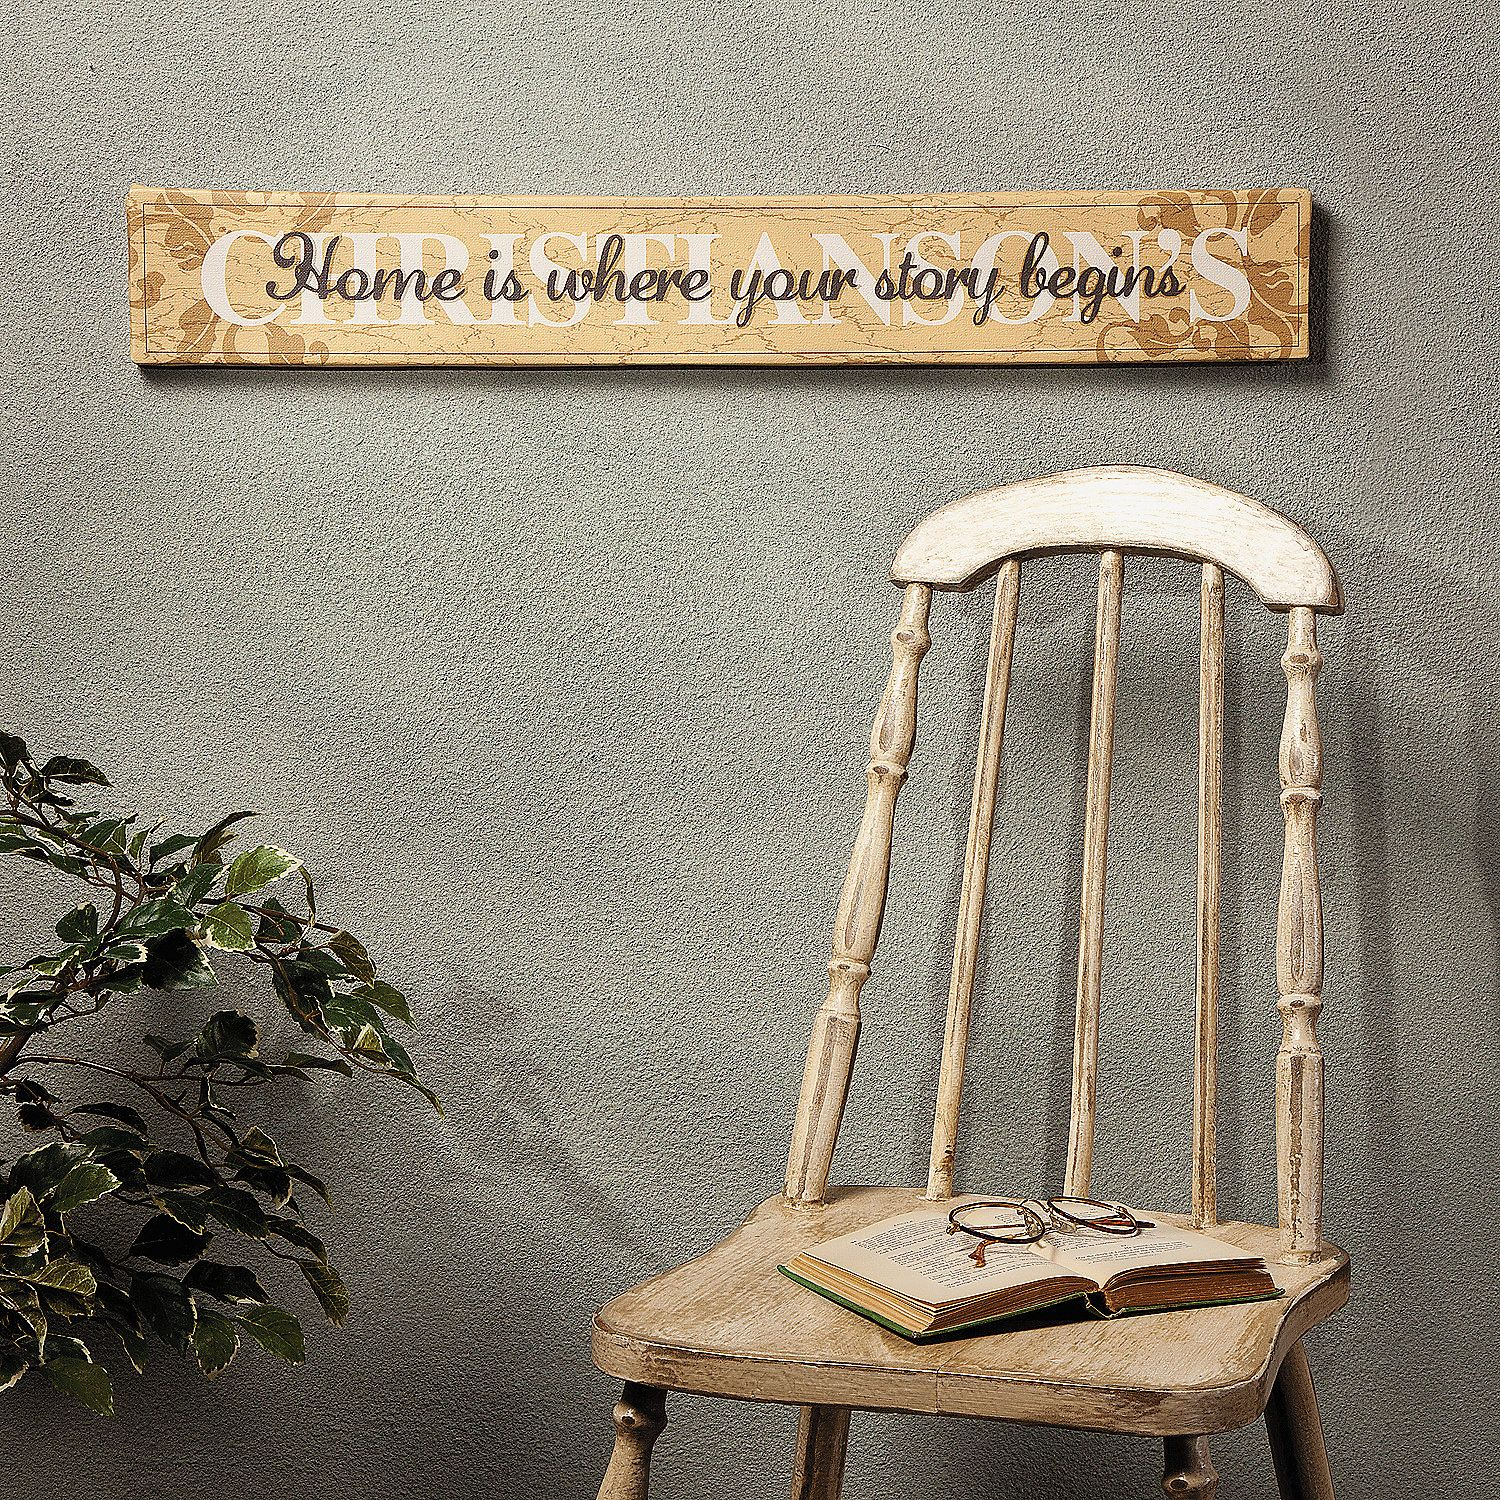 "Wall Decor Signs For Home Mesmerizing Home Is Where Your Story Begins"" Sign  Orientaltrading  Sign Design Ideas"